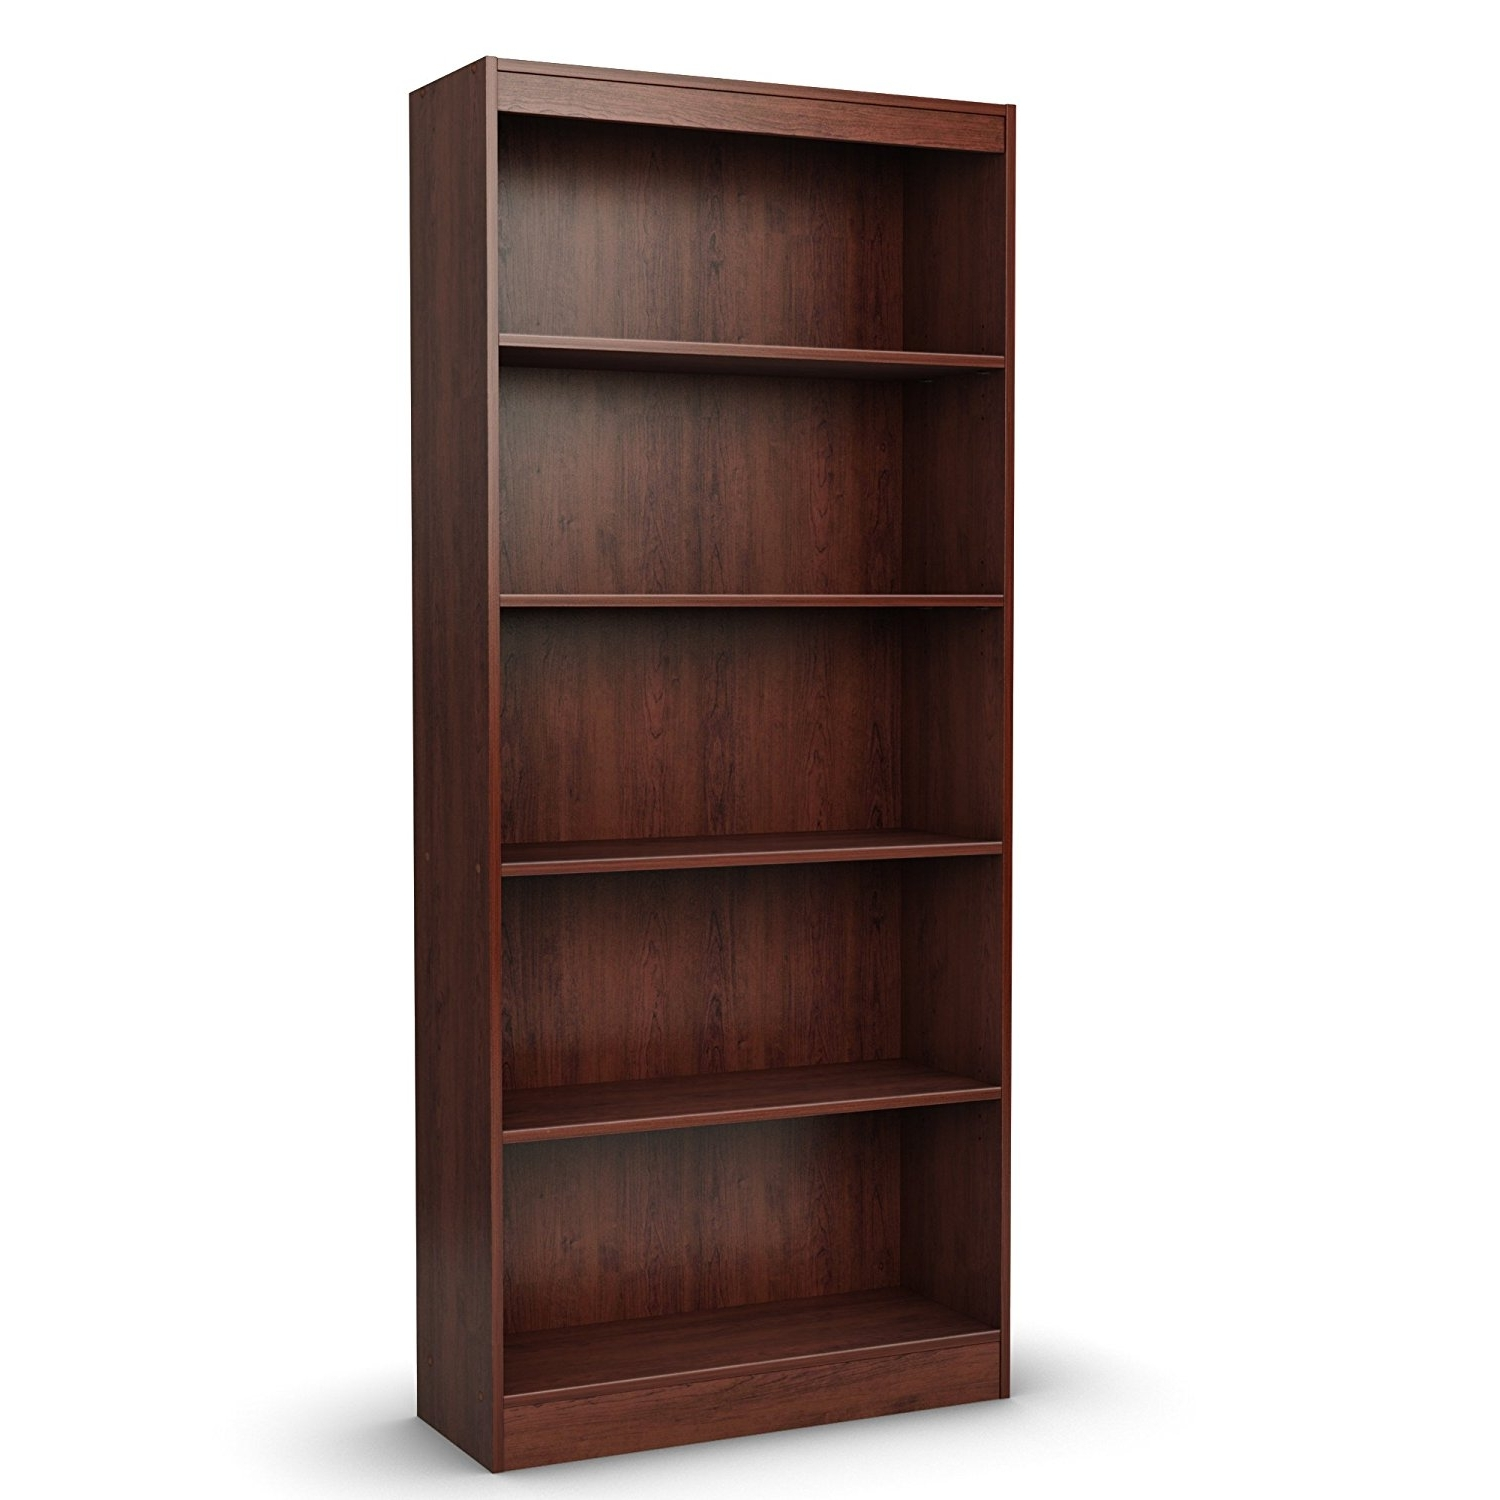 Most Popular Amazon: South Shore Axess Collection 5 Shelf Bookcase, Royal With Regard To Wood Bookcases (View 14 of 15)